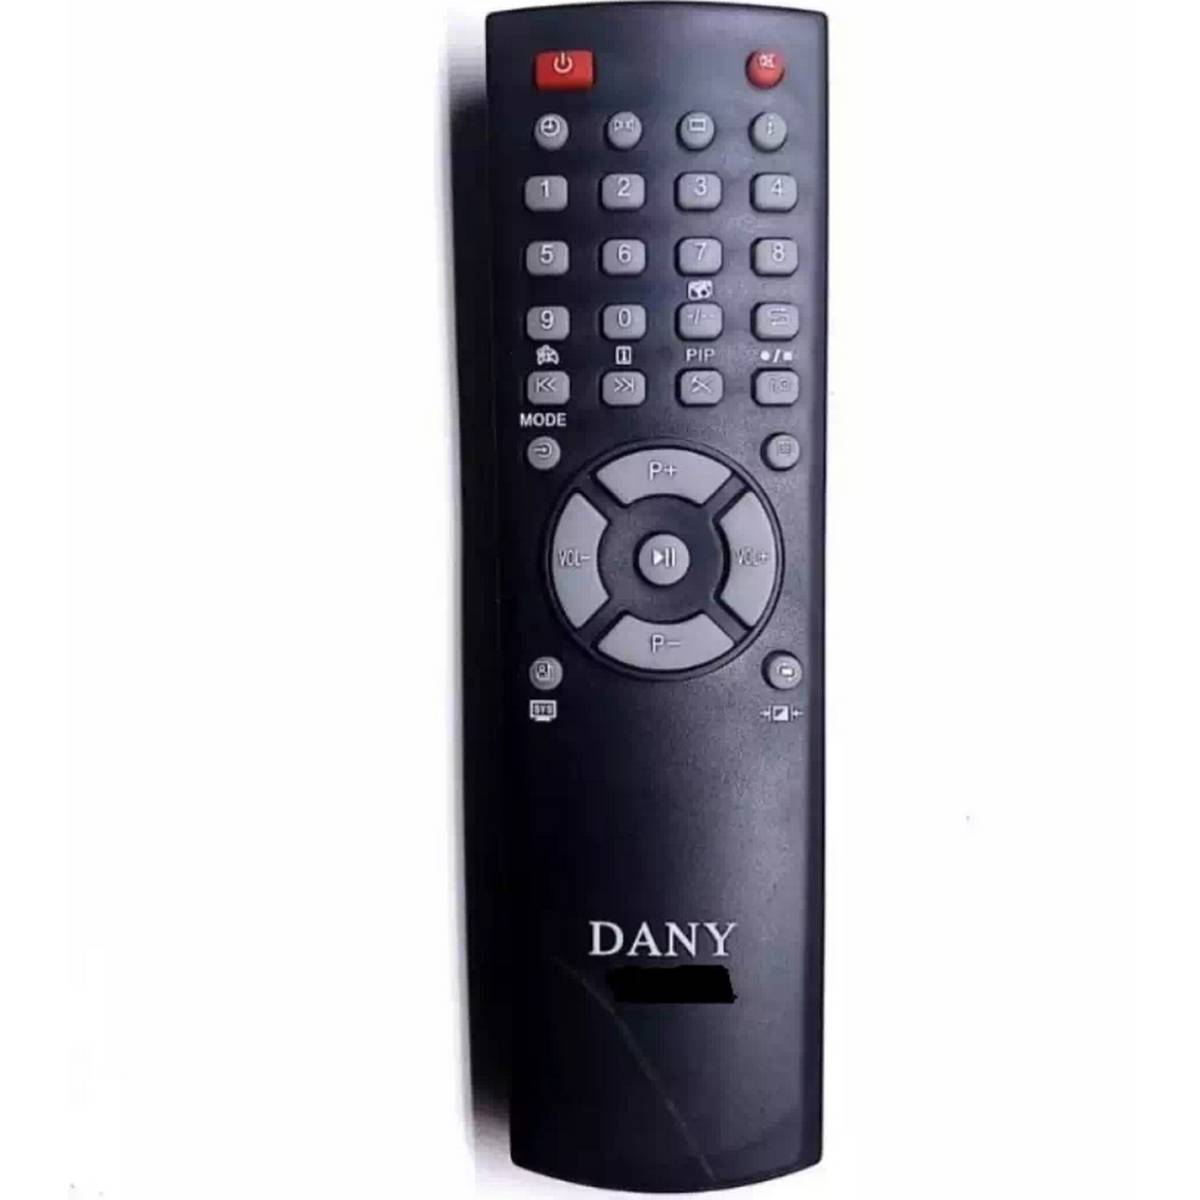 Universal Remote For All DANY TV Device - Black